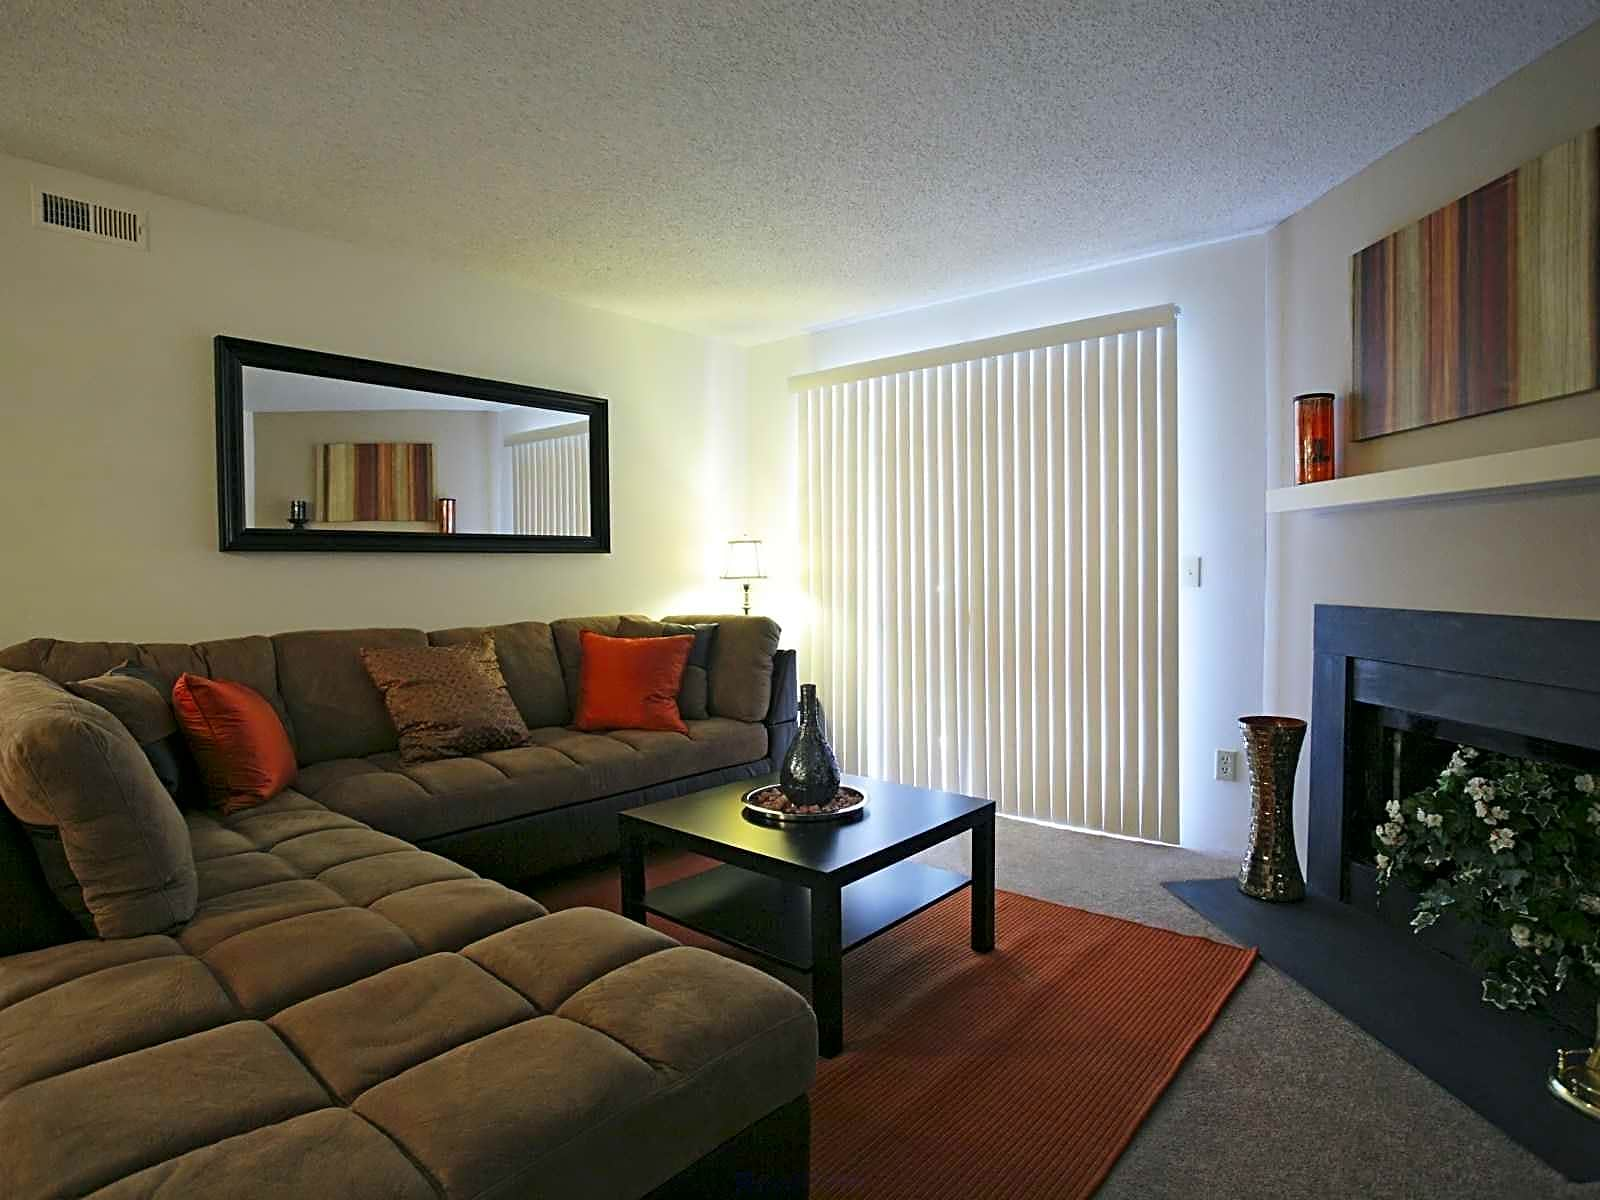 Photo: Spartanburg Apartment for Rent - $600.00 / month; 1 Bd & 1 Ba